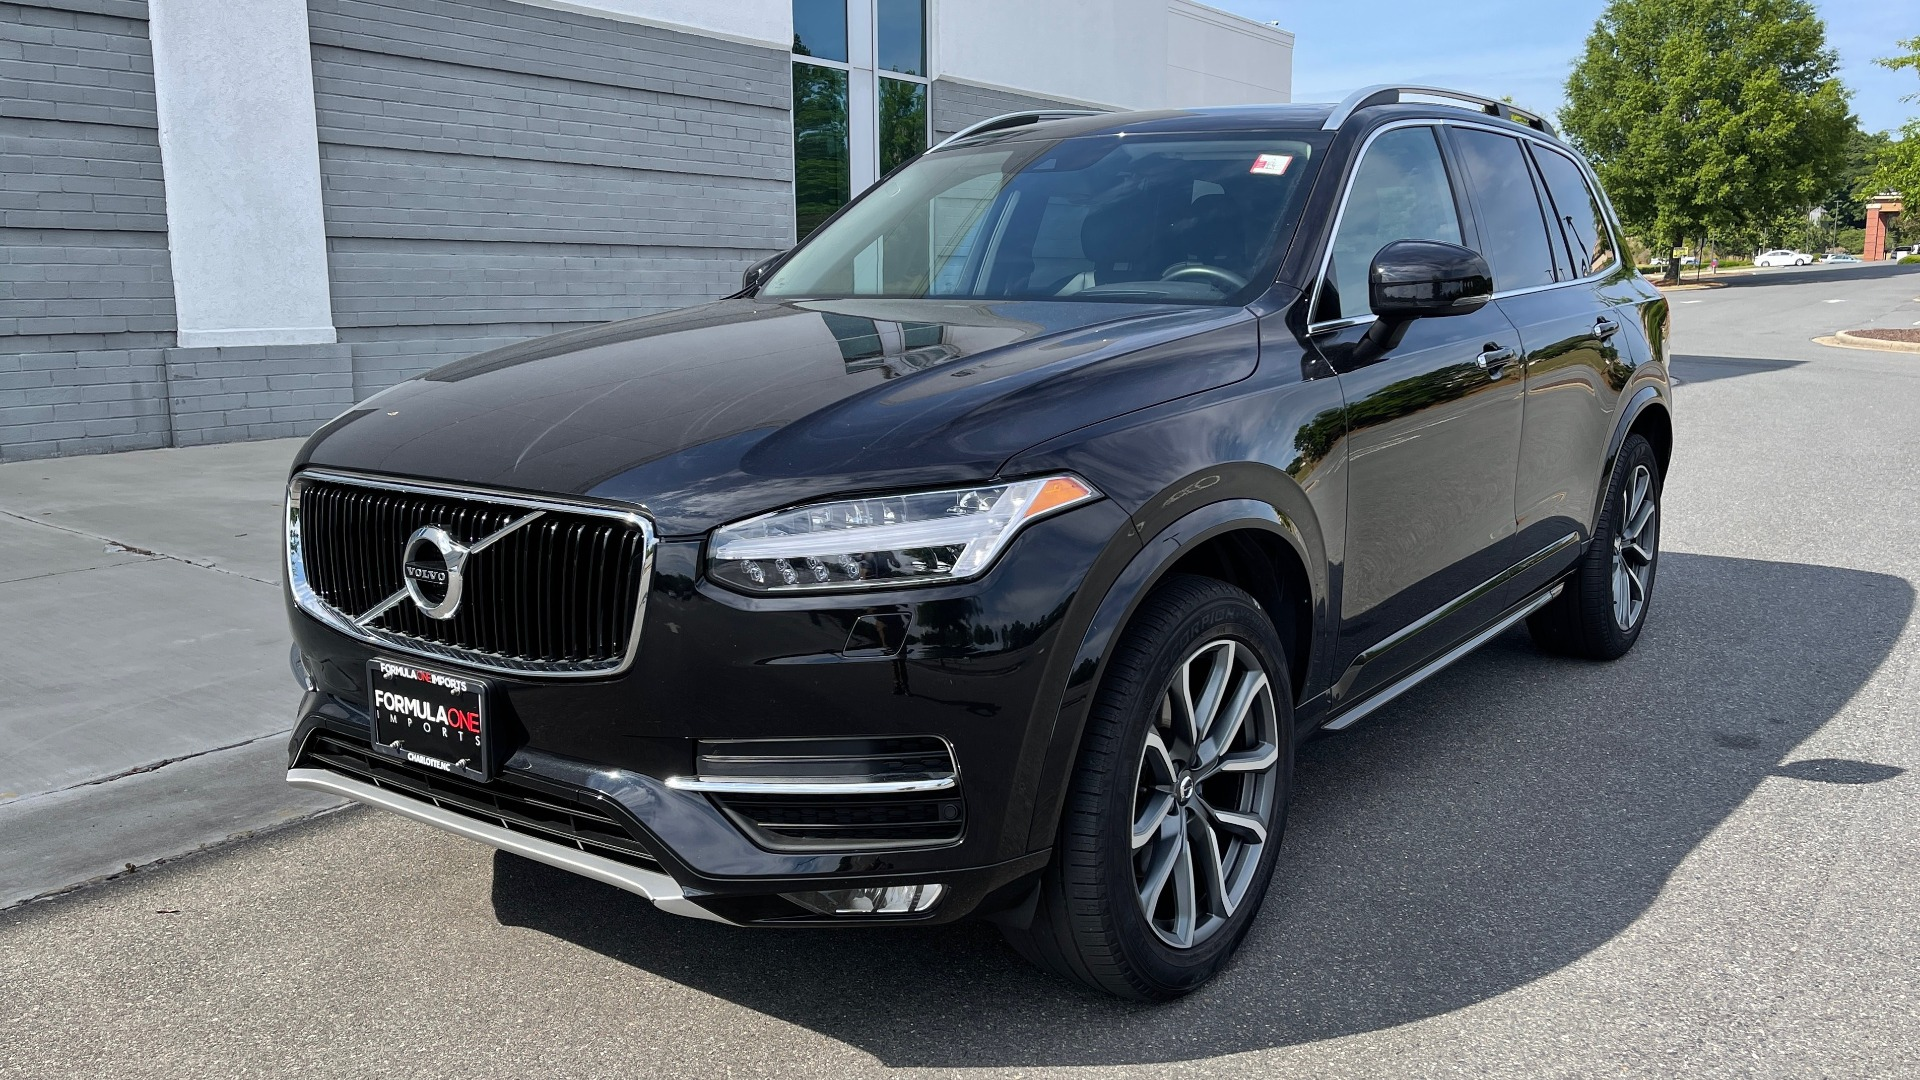 Used 2018 Volvo XC90 T5 AWD MOMENTUM PLUS / NAV / SUNROOF / 3-ROW / REARVIEW for sale $40,295 at Formula Imports in Charlotte NC 28227 3